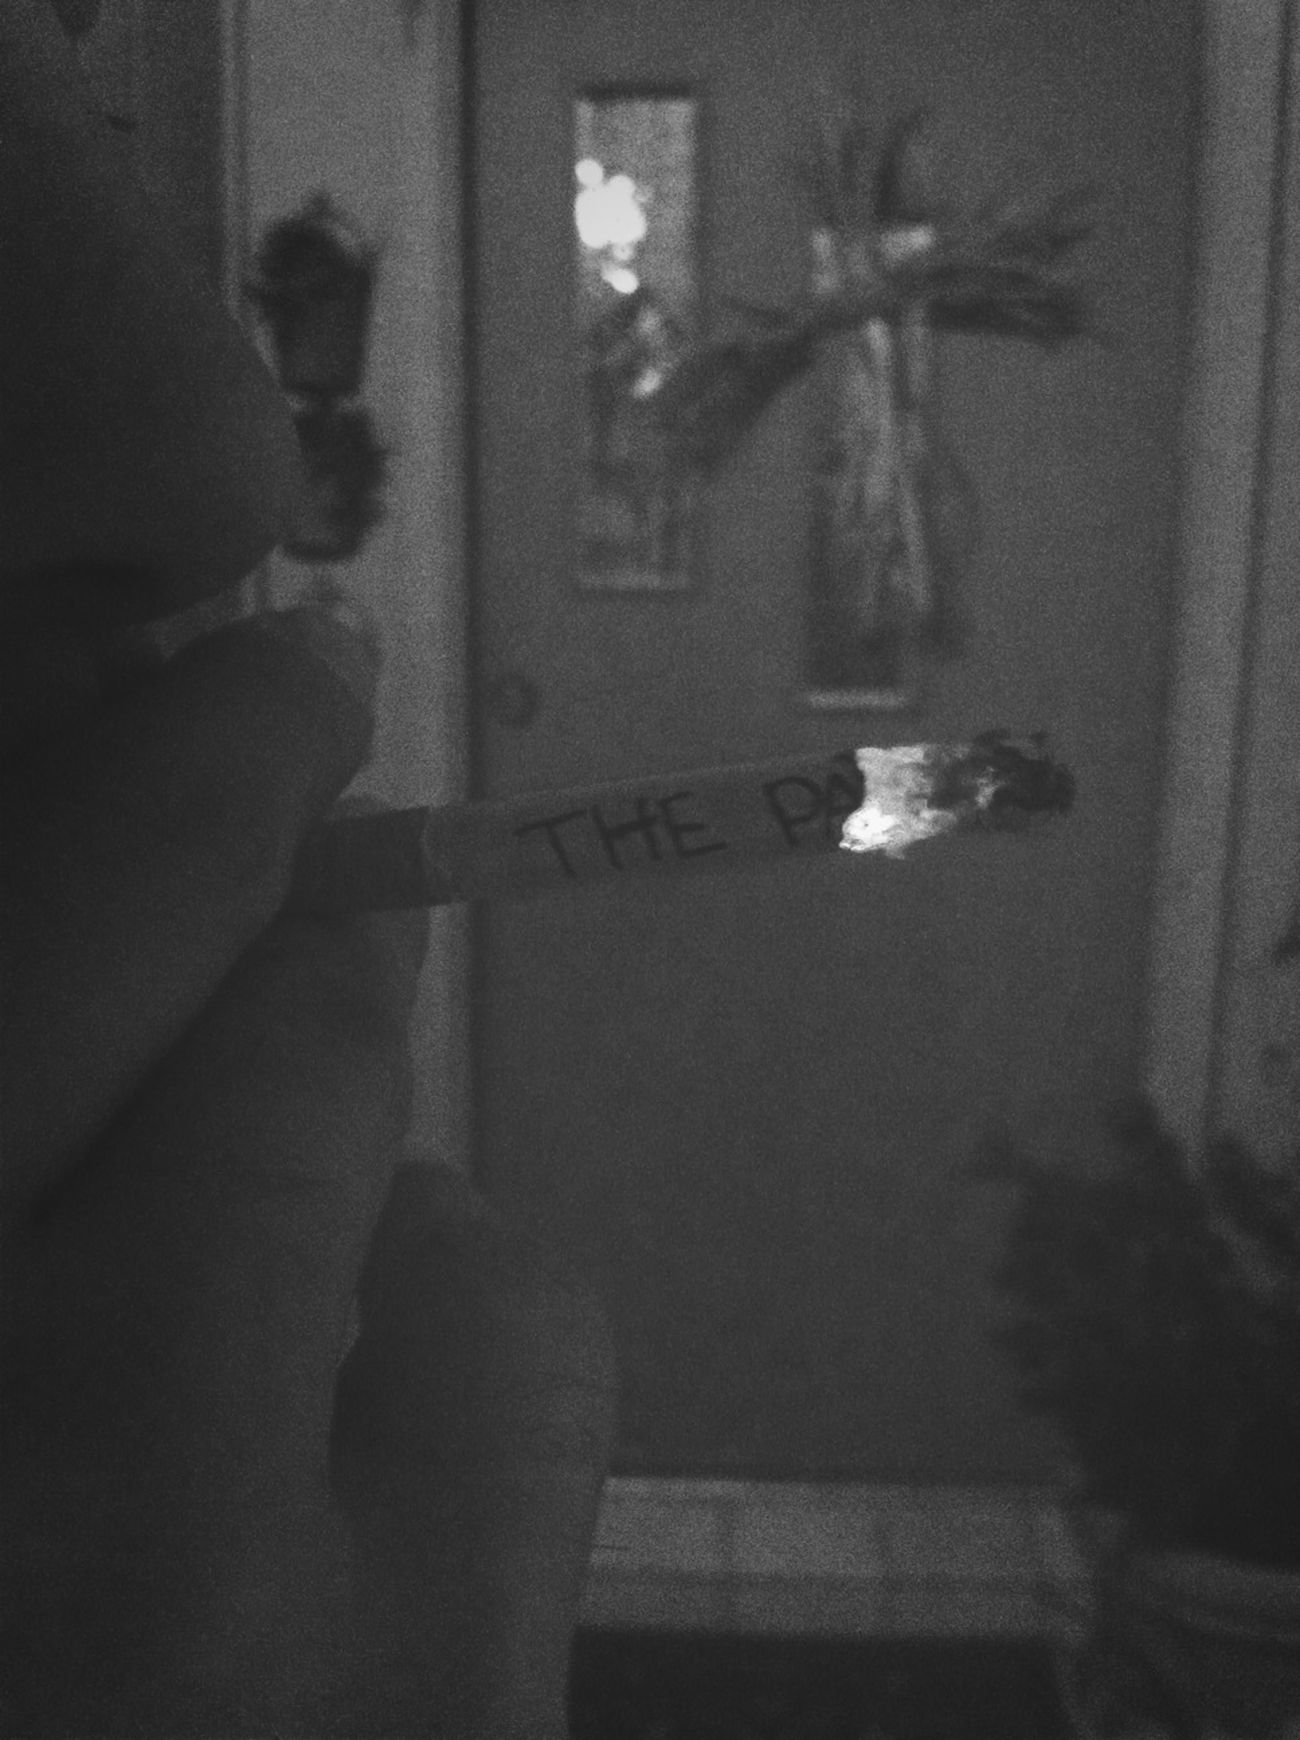 Smoke away the past